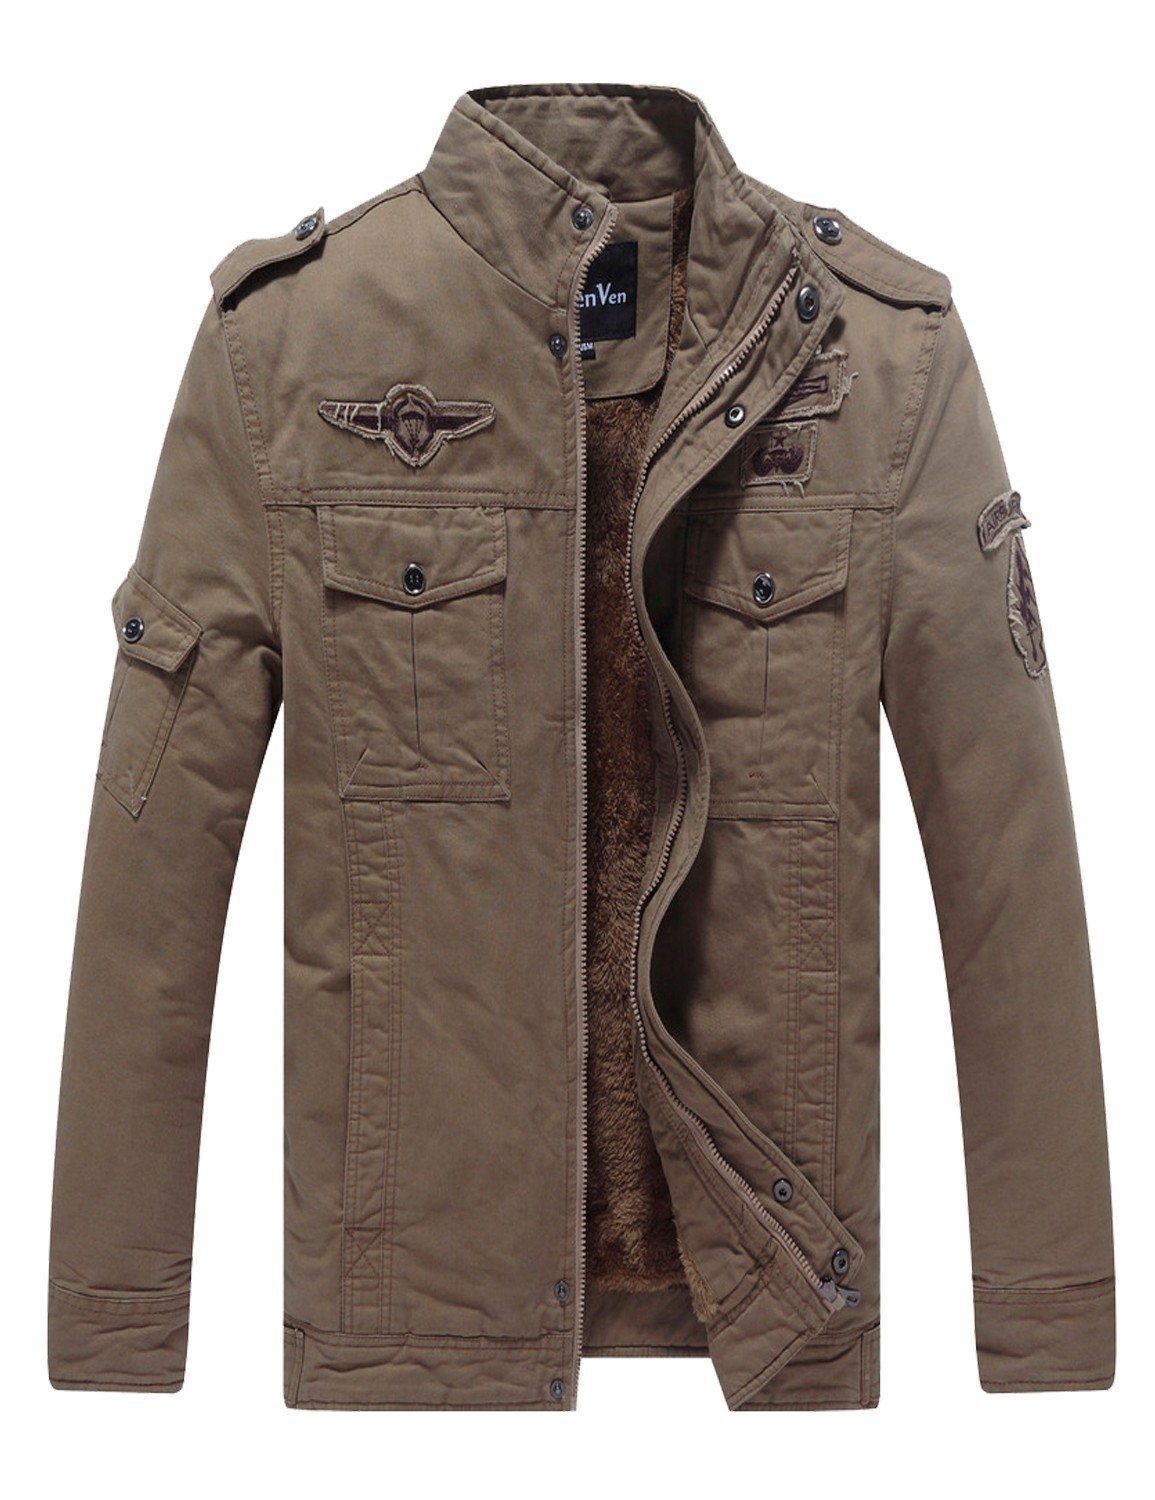 Military Style Jacket Defining The Style In A Macho Way